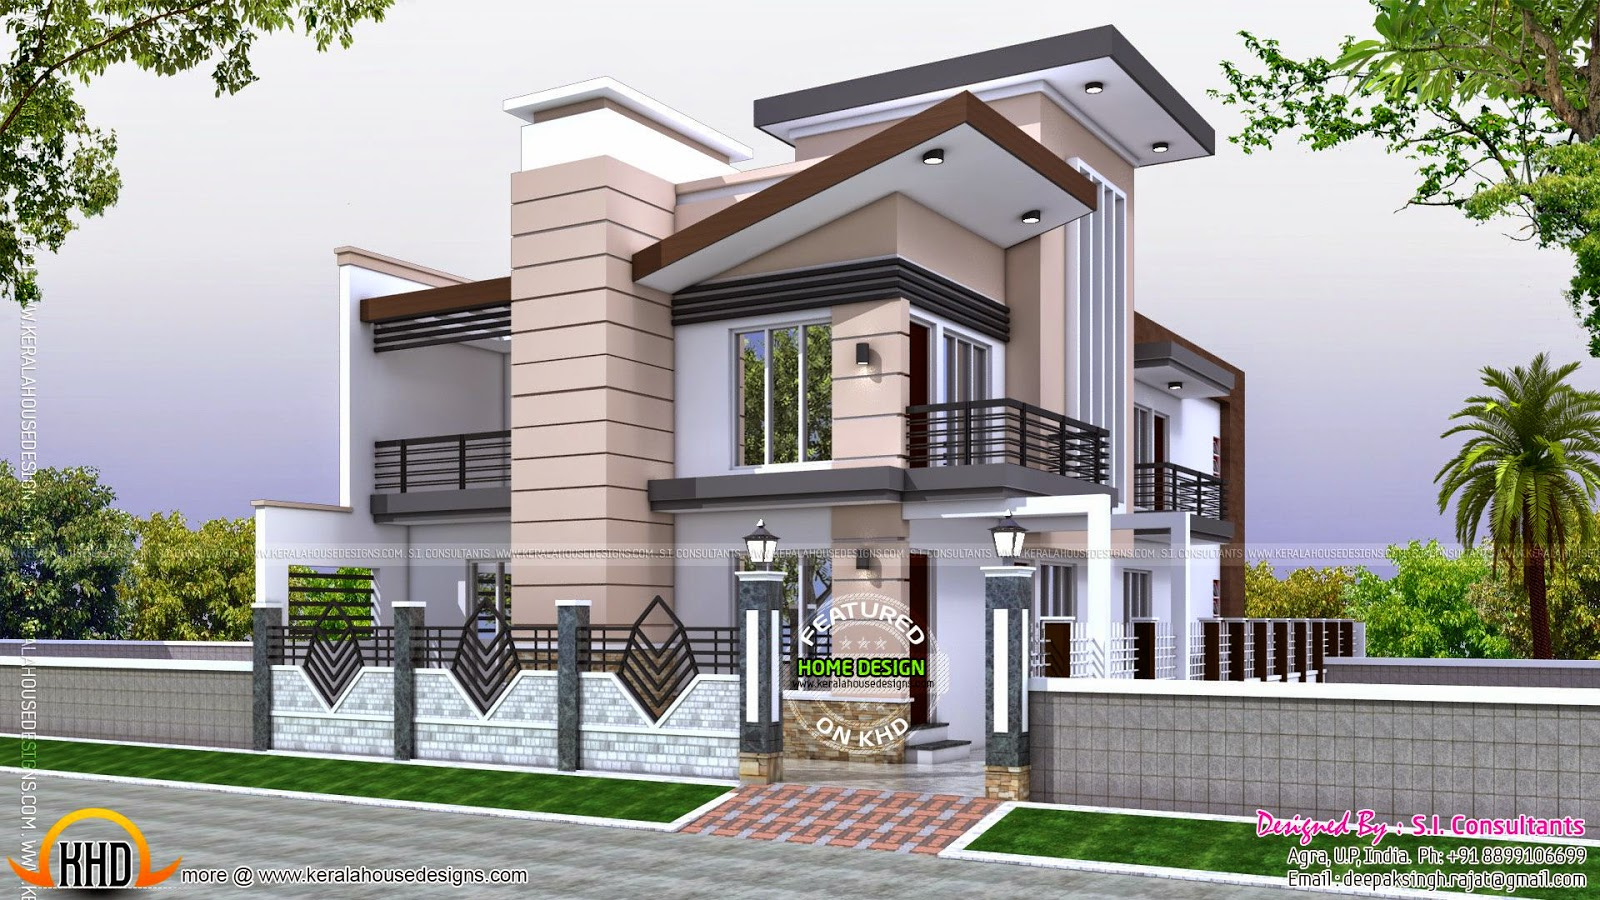 Indian home modern style kerala home design and floor plans Indian home design plans